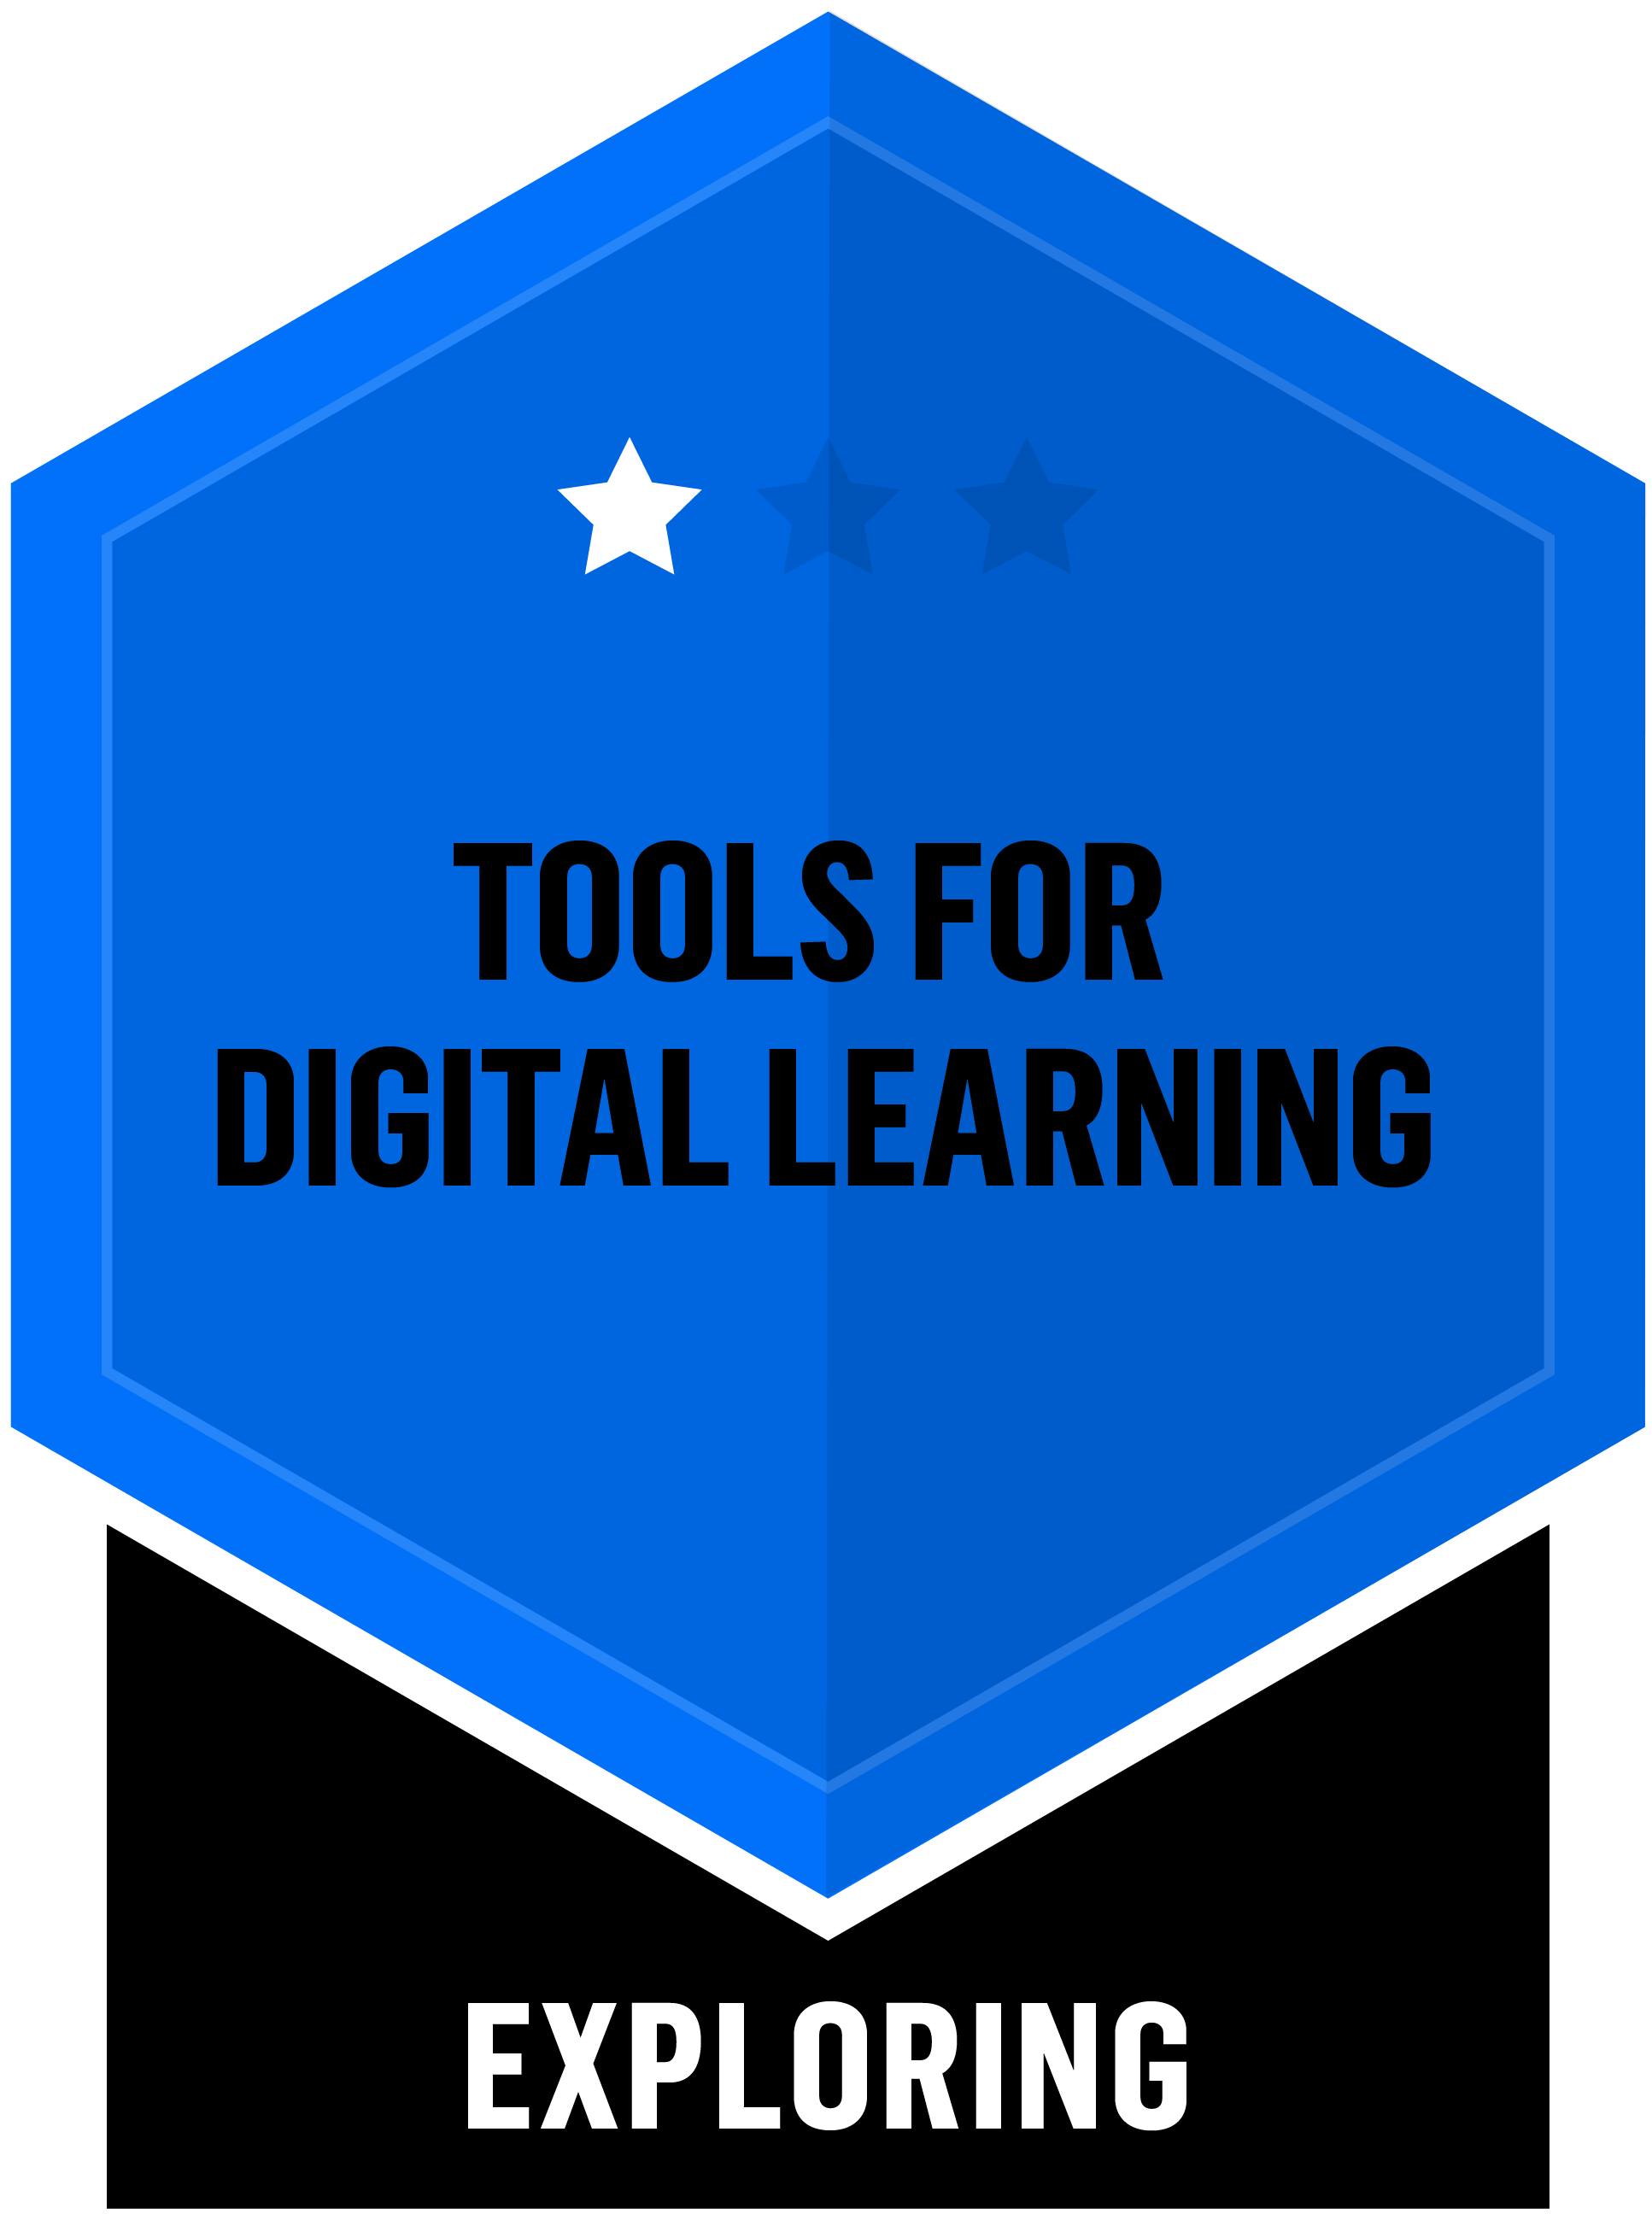 Badge for Tools for digital learning - Exploring